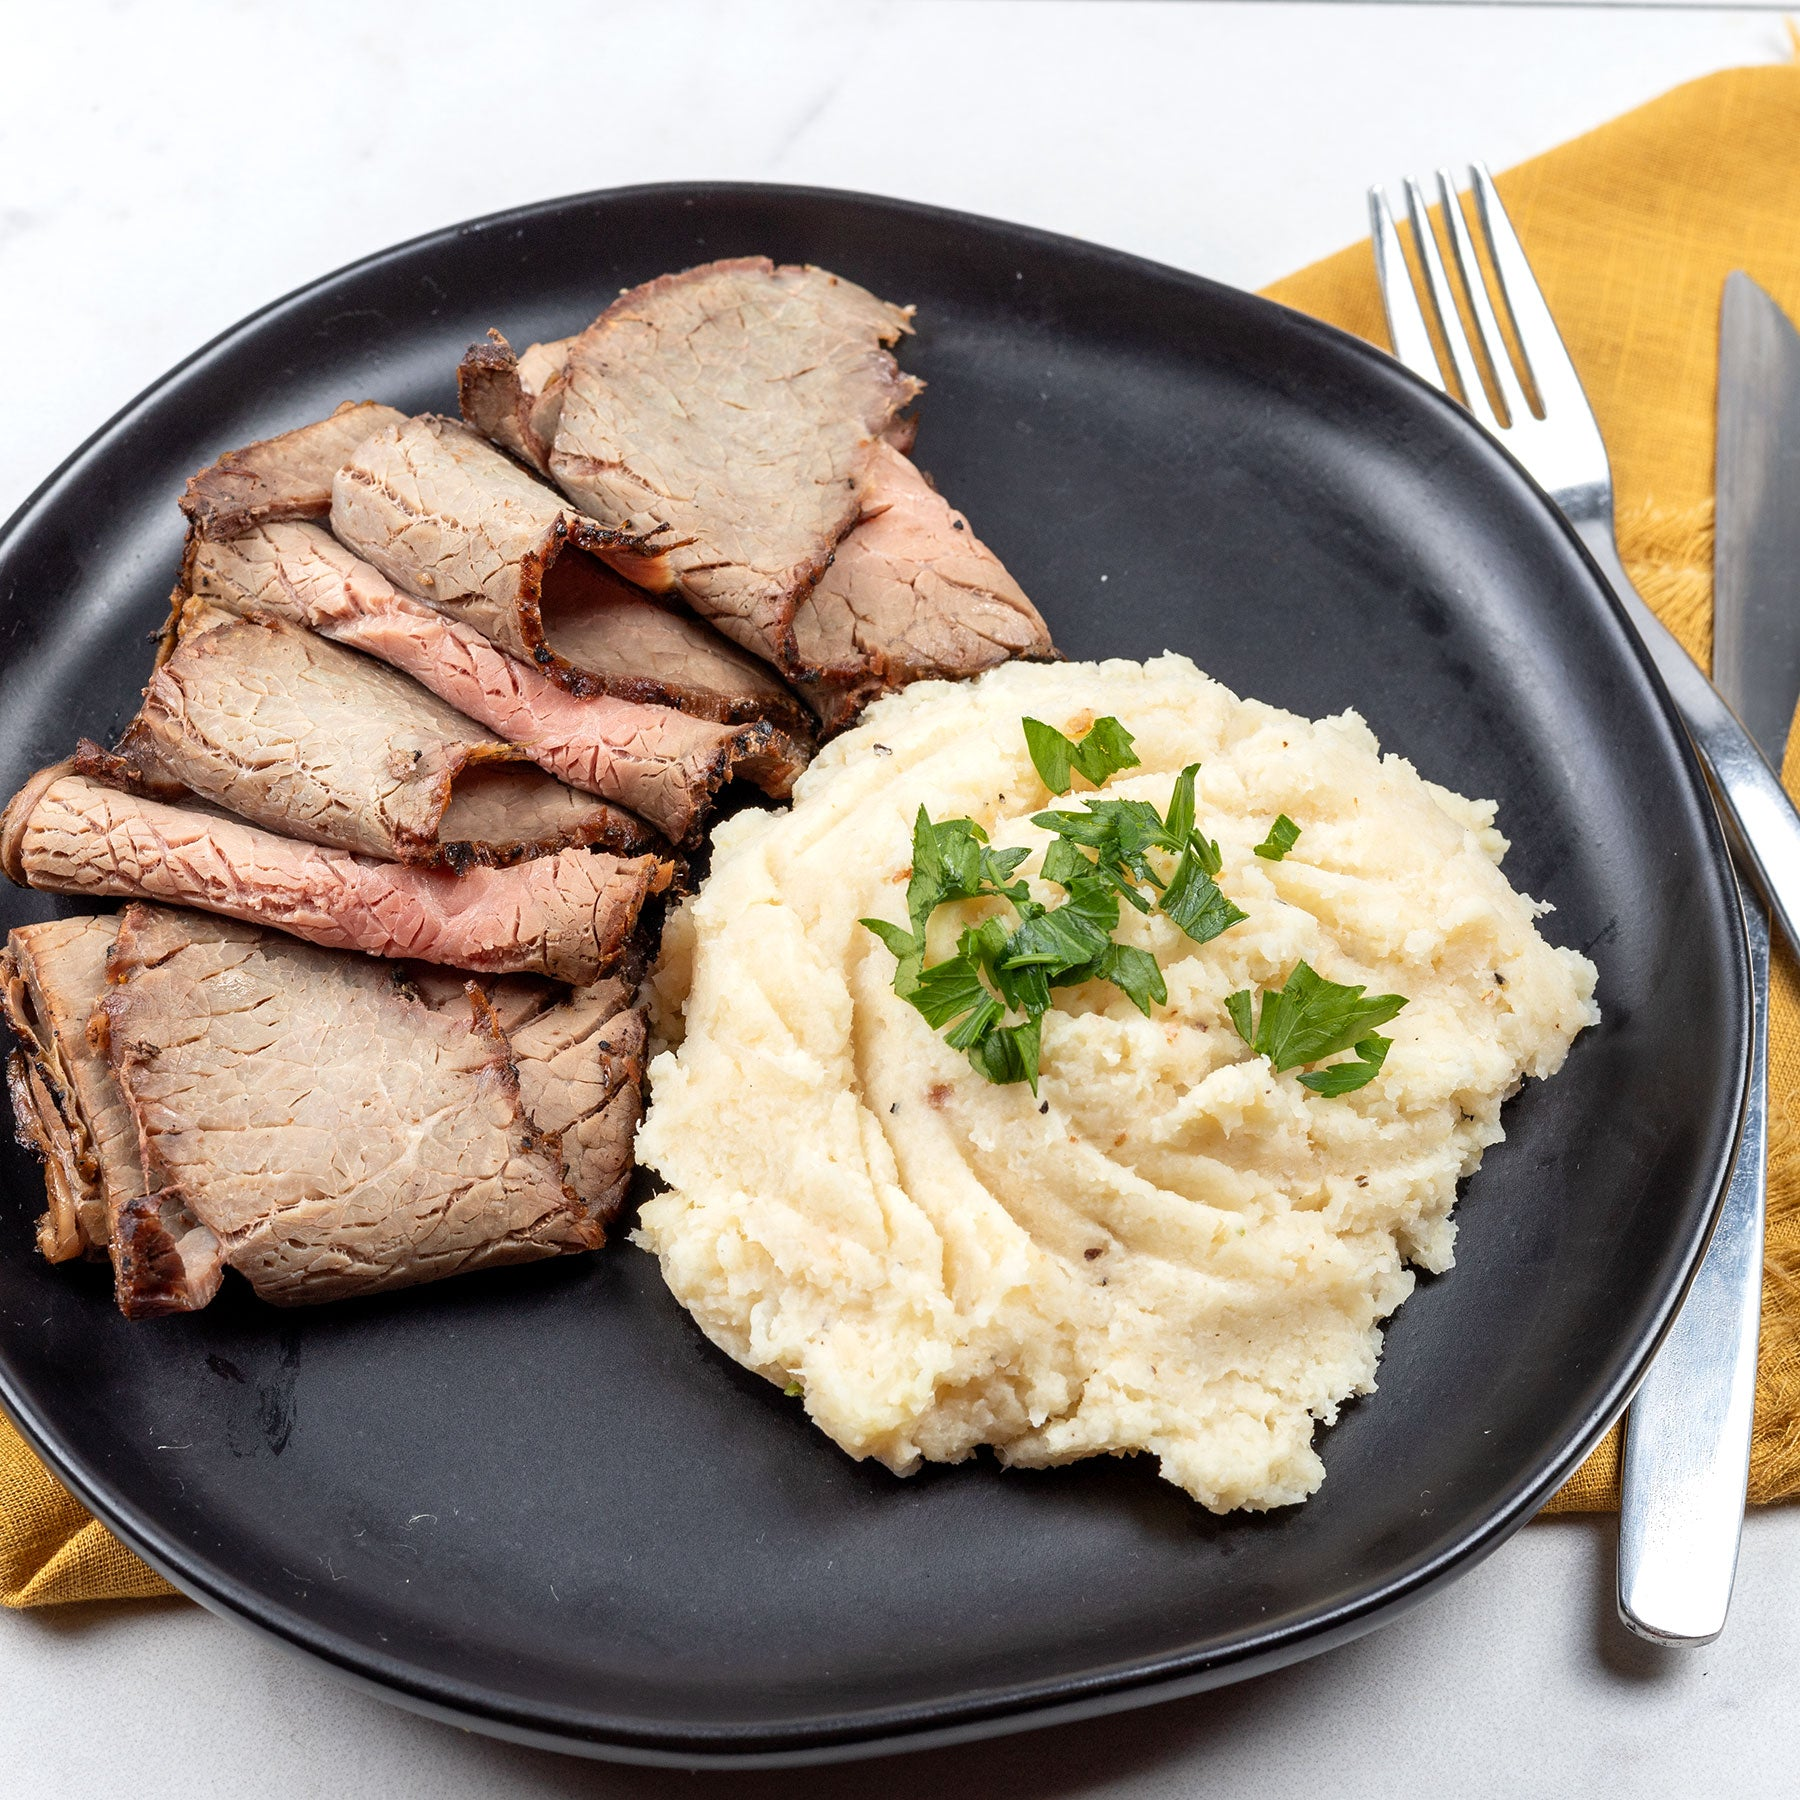 Salt & Pepper Crusted Steak and Keto Mash